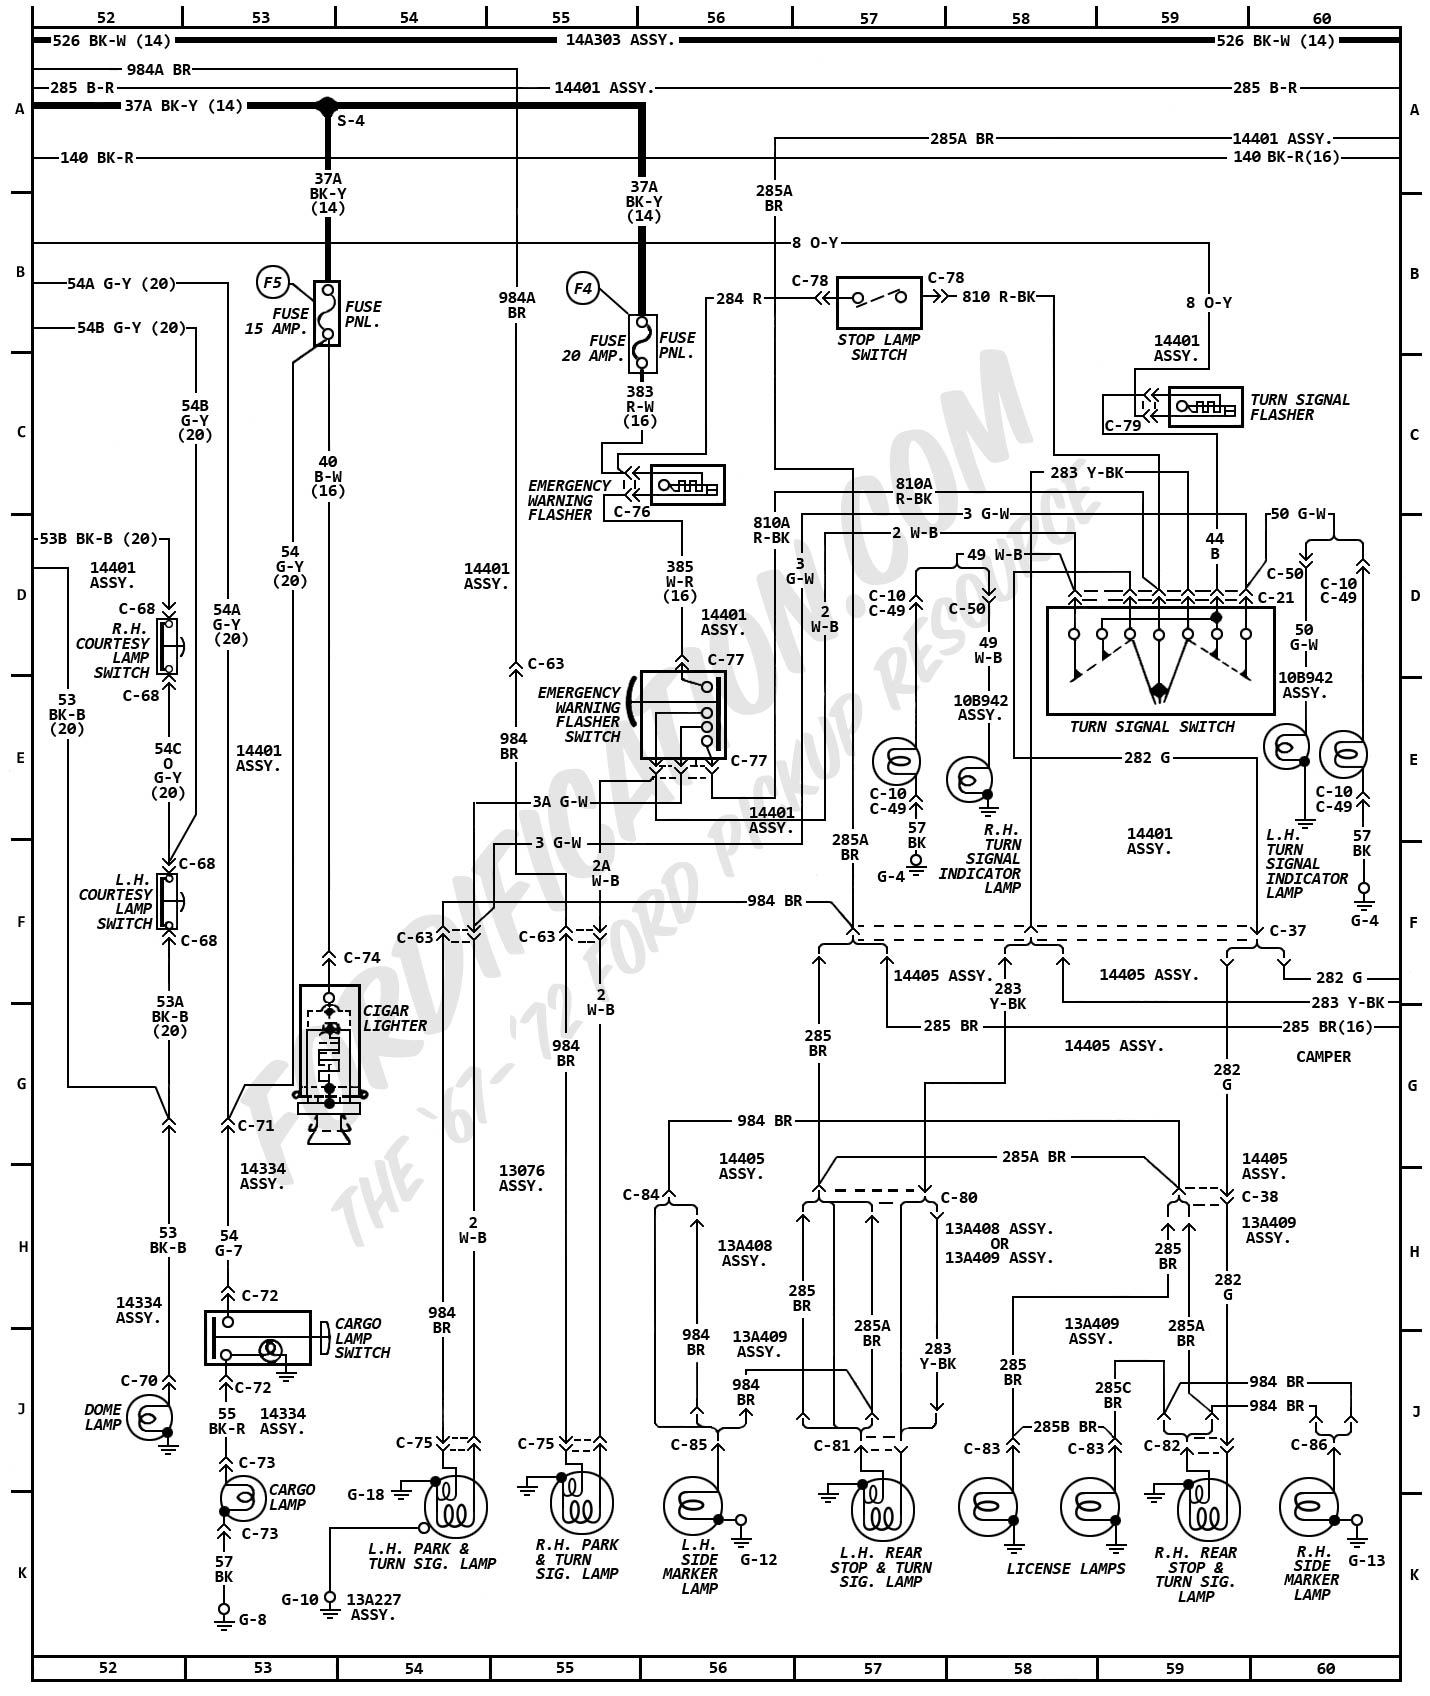 1975 Ford Alternator Wiring Diagram Books Of Toshiba T300mvi Diagrams 1974 F 250 Ignition Switch Reveolution Rh Jivehype Co